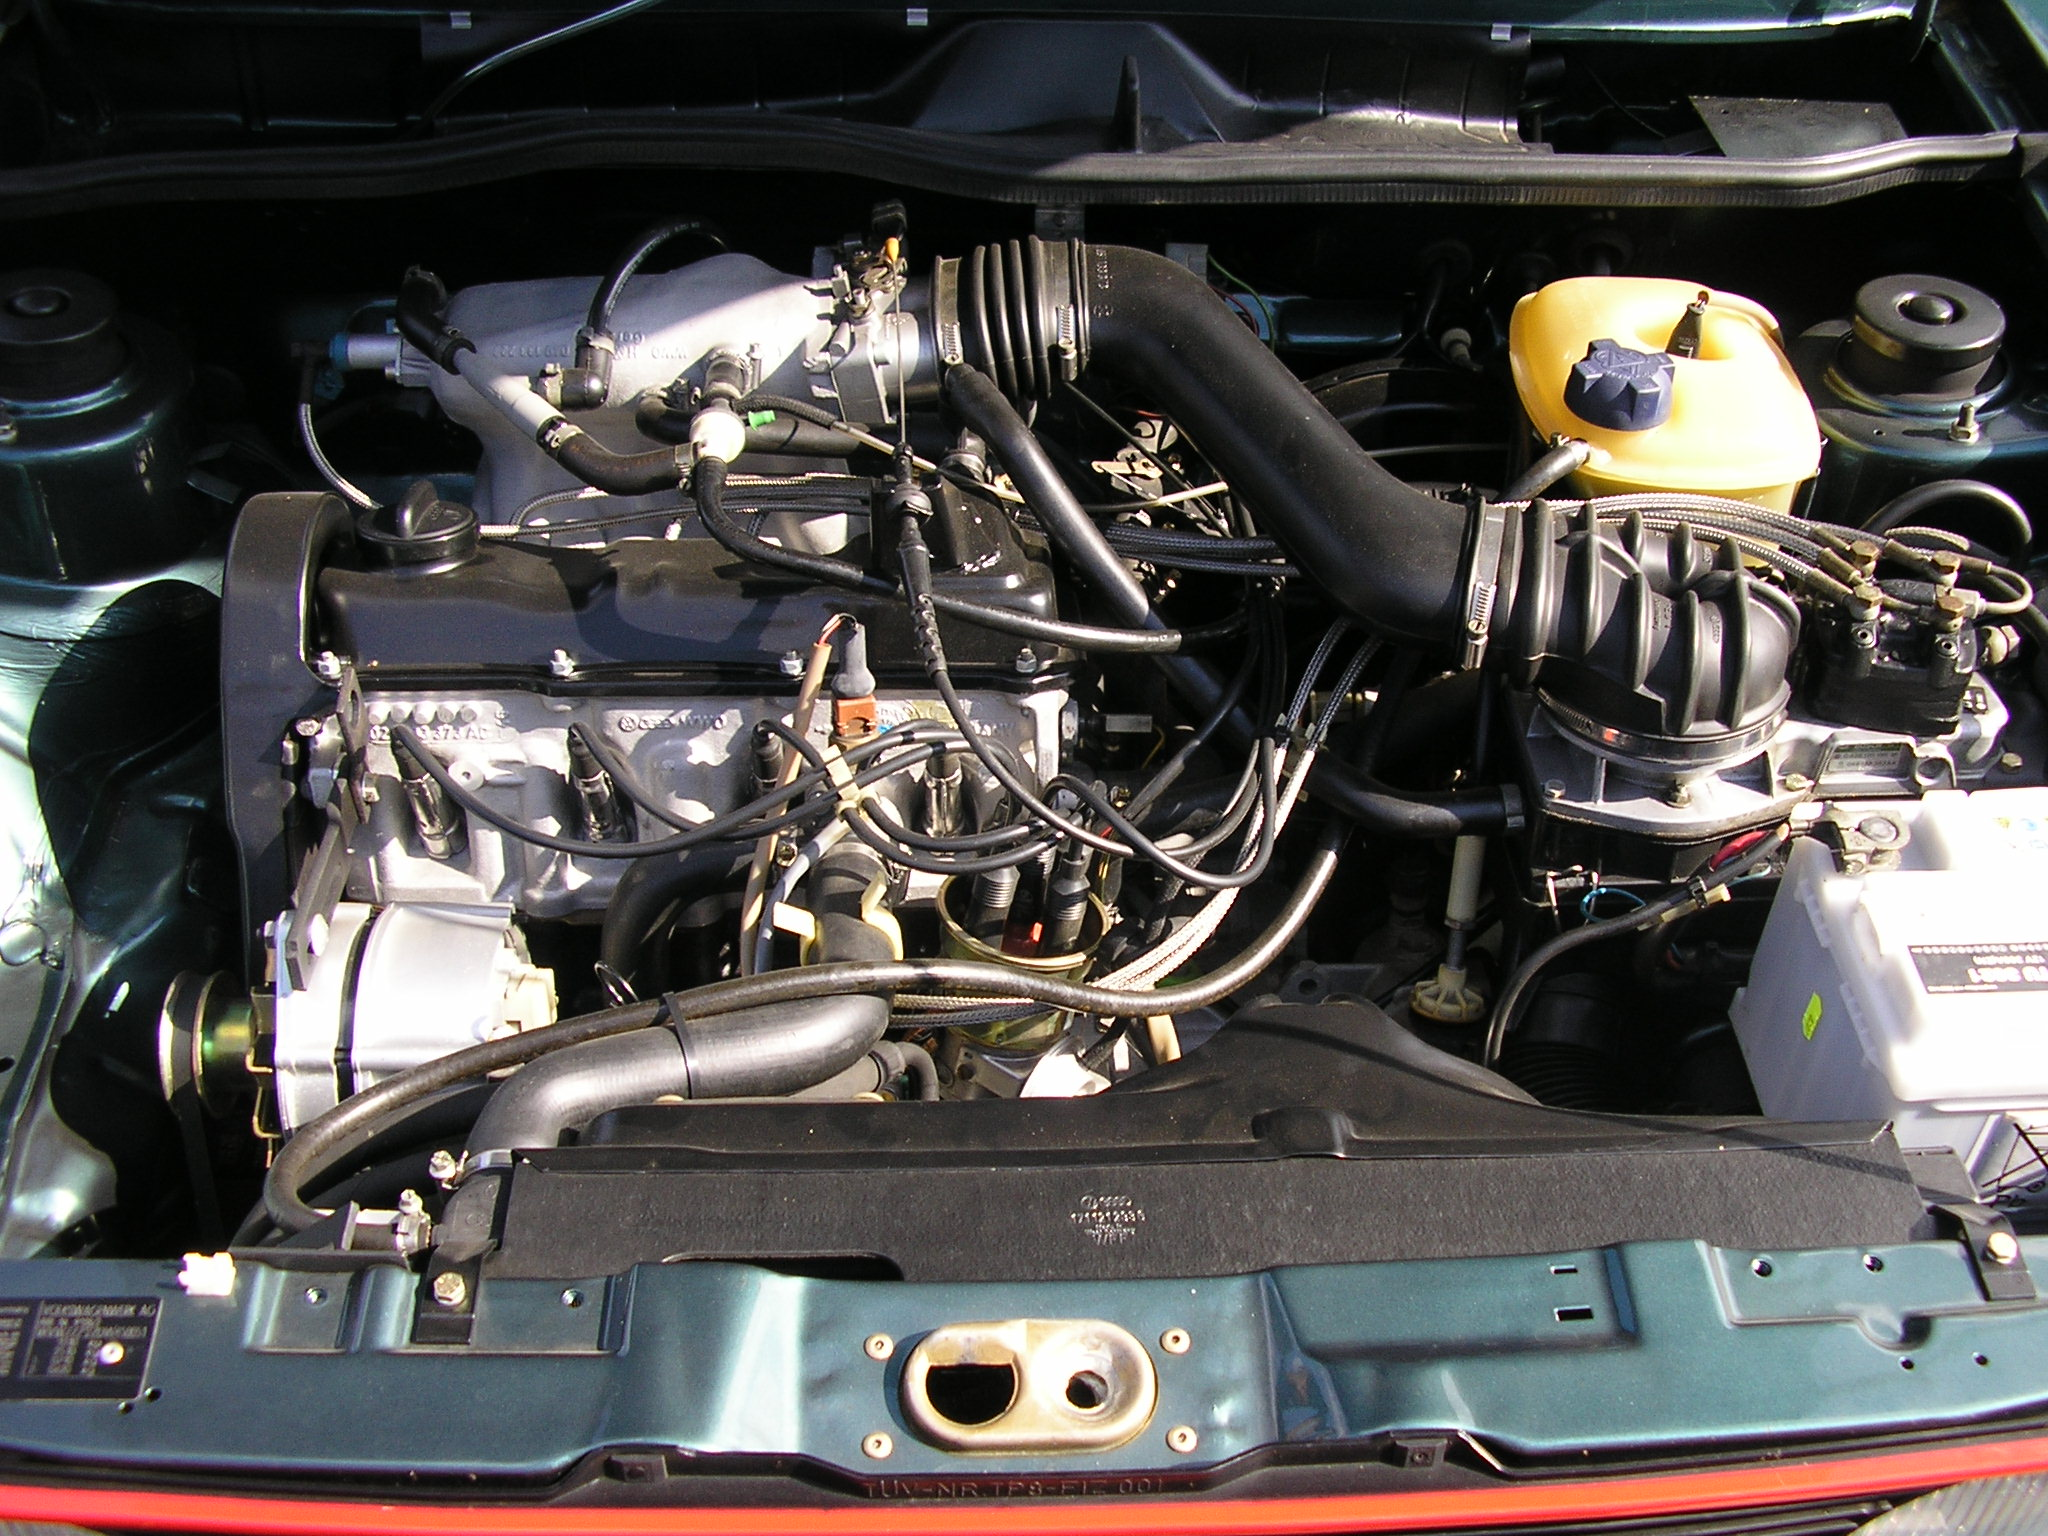 Filemotor Vw Golf I Gti 112 Ps Wikimedia Commons Motor Wiring